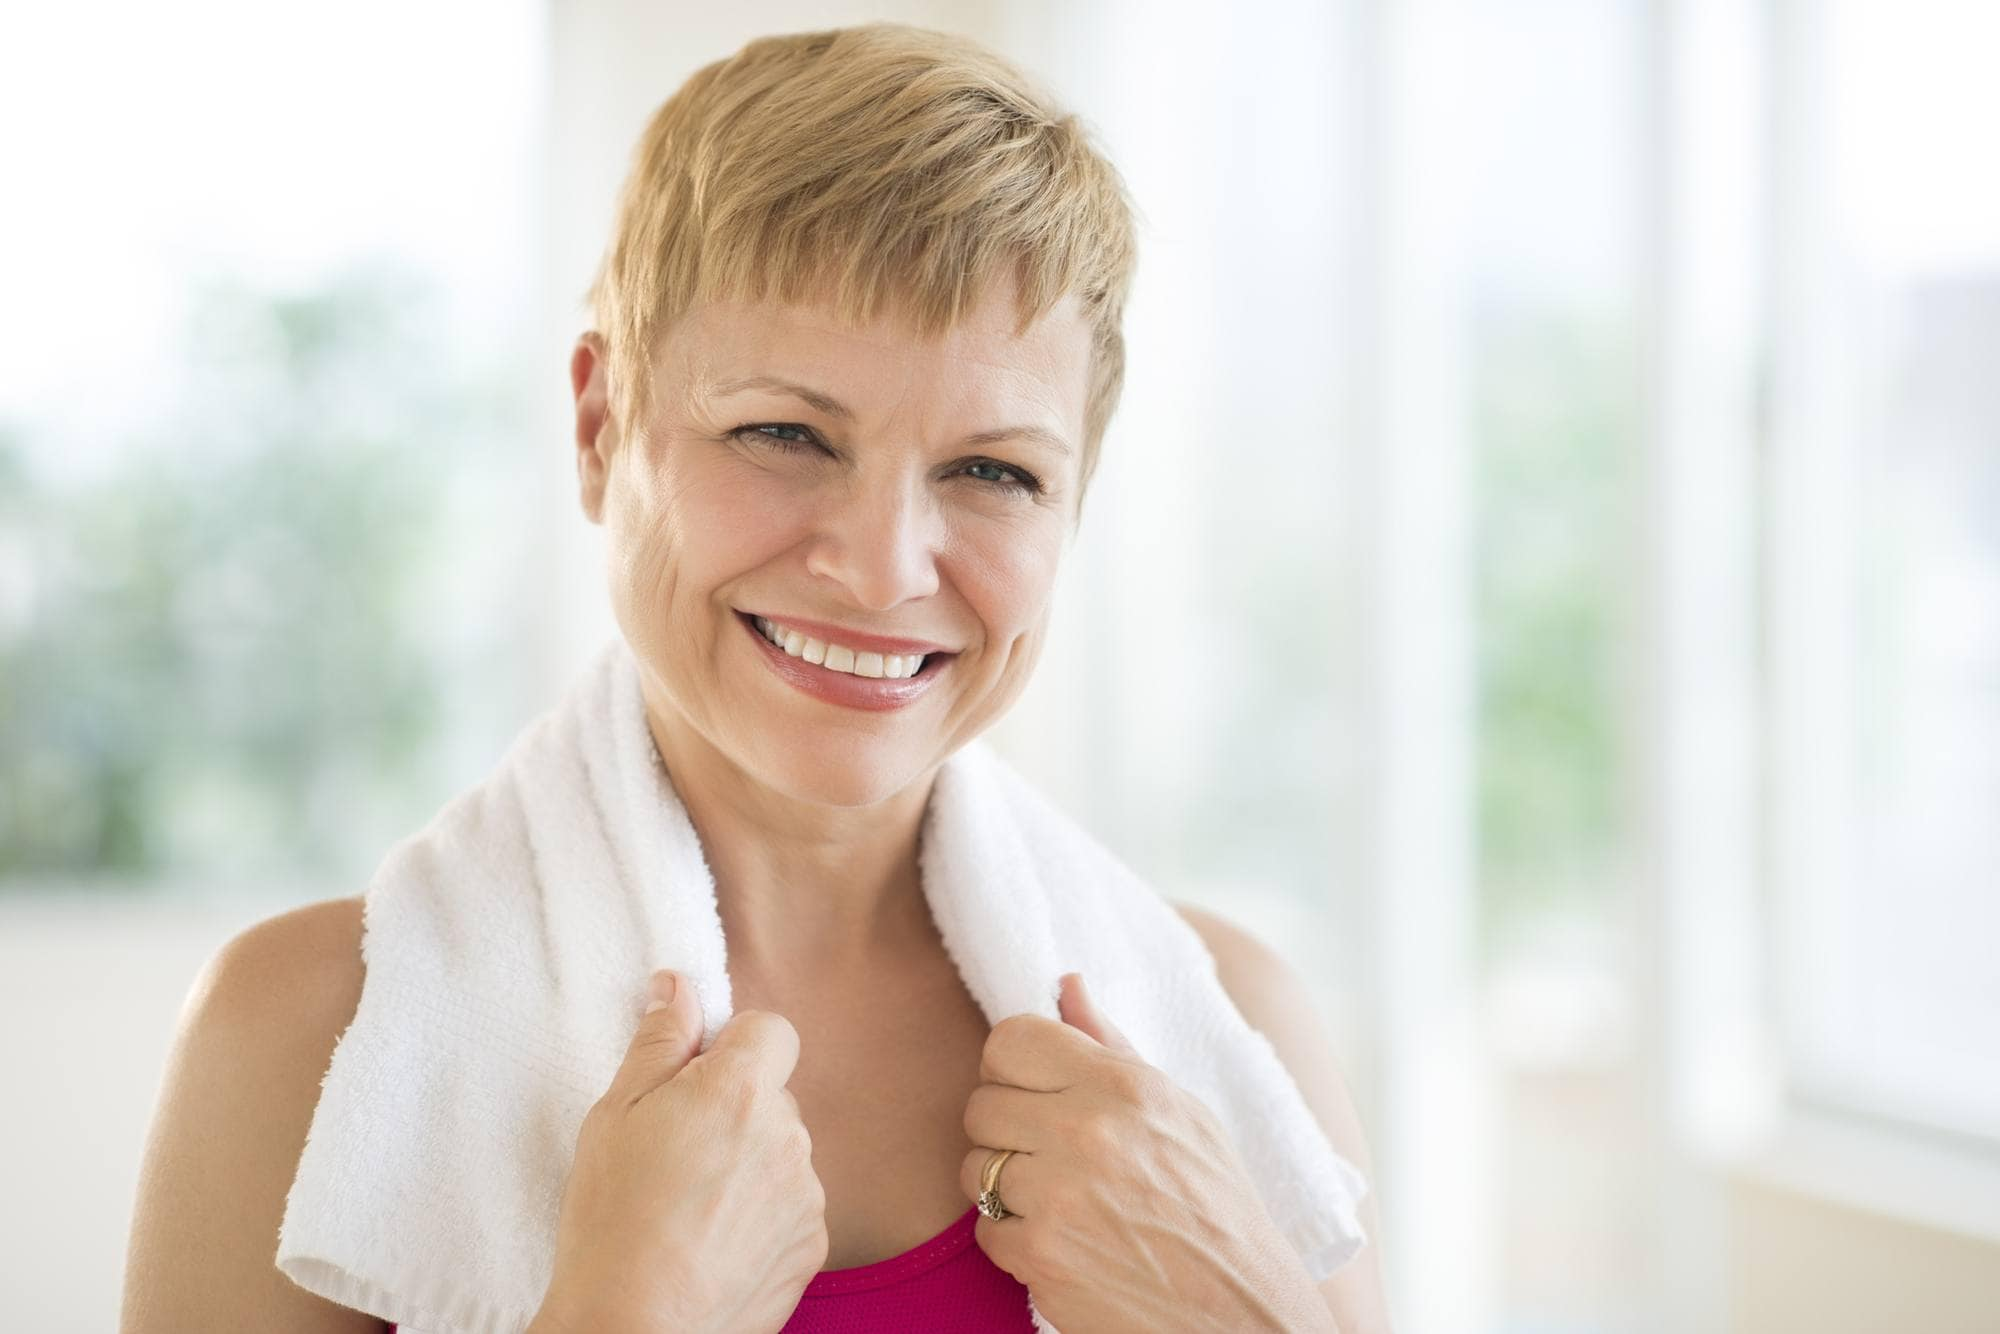 8 Pretty Short Hairstyles for Women Over 50 in 2019